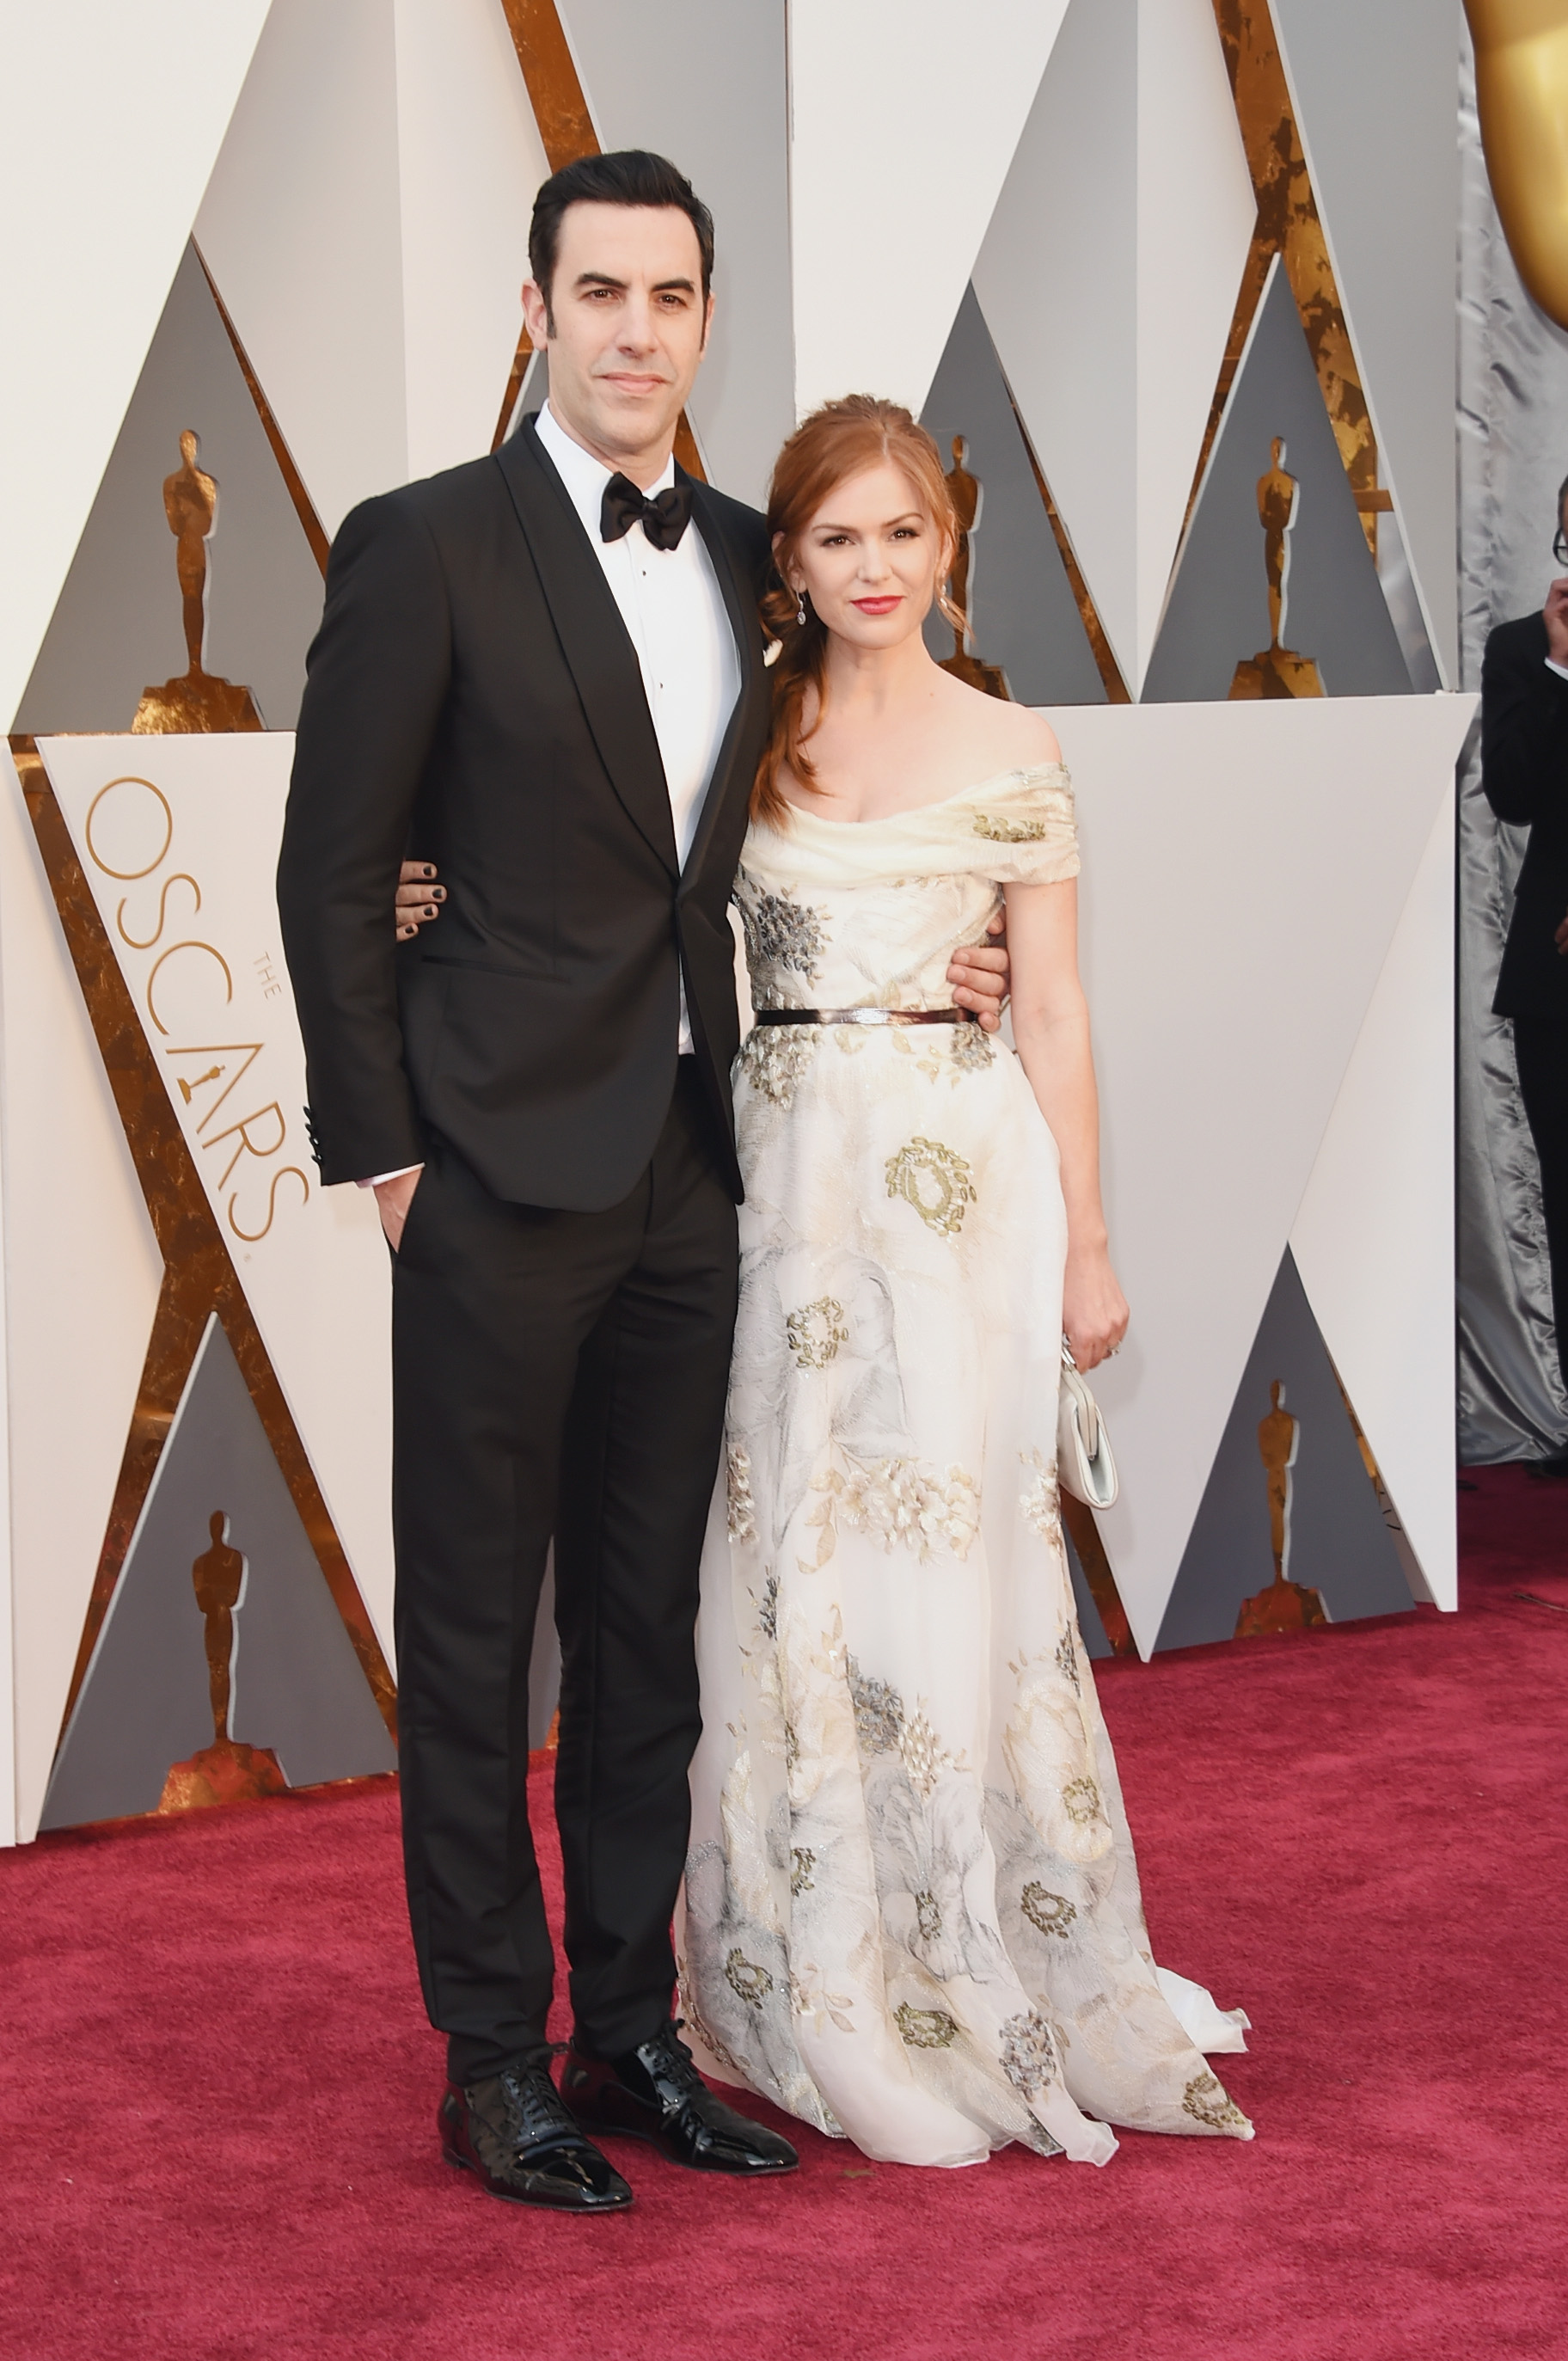 Sacha Baron Cohen and Isla Fisher attend the 88th Annual Academy Awards on Feb. 28, 2016 in Hollywood, Calif.